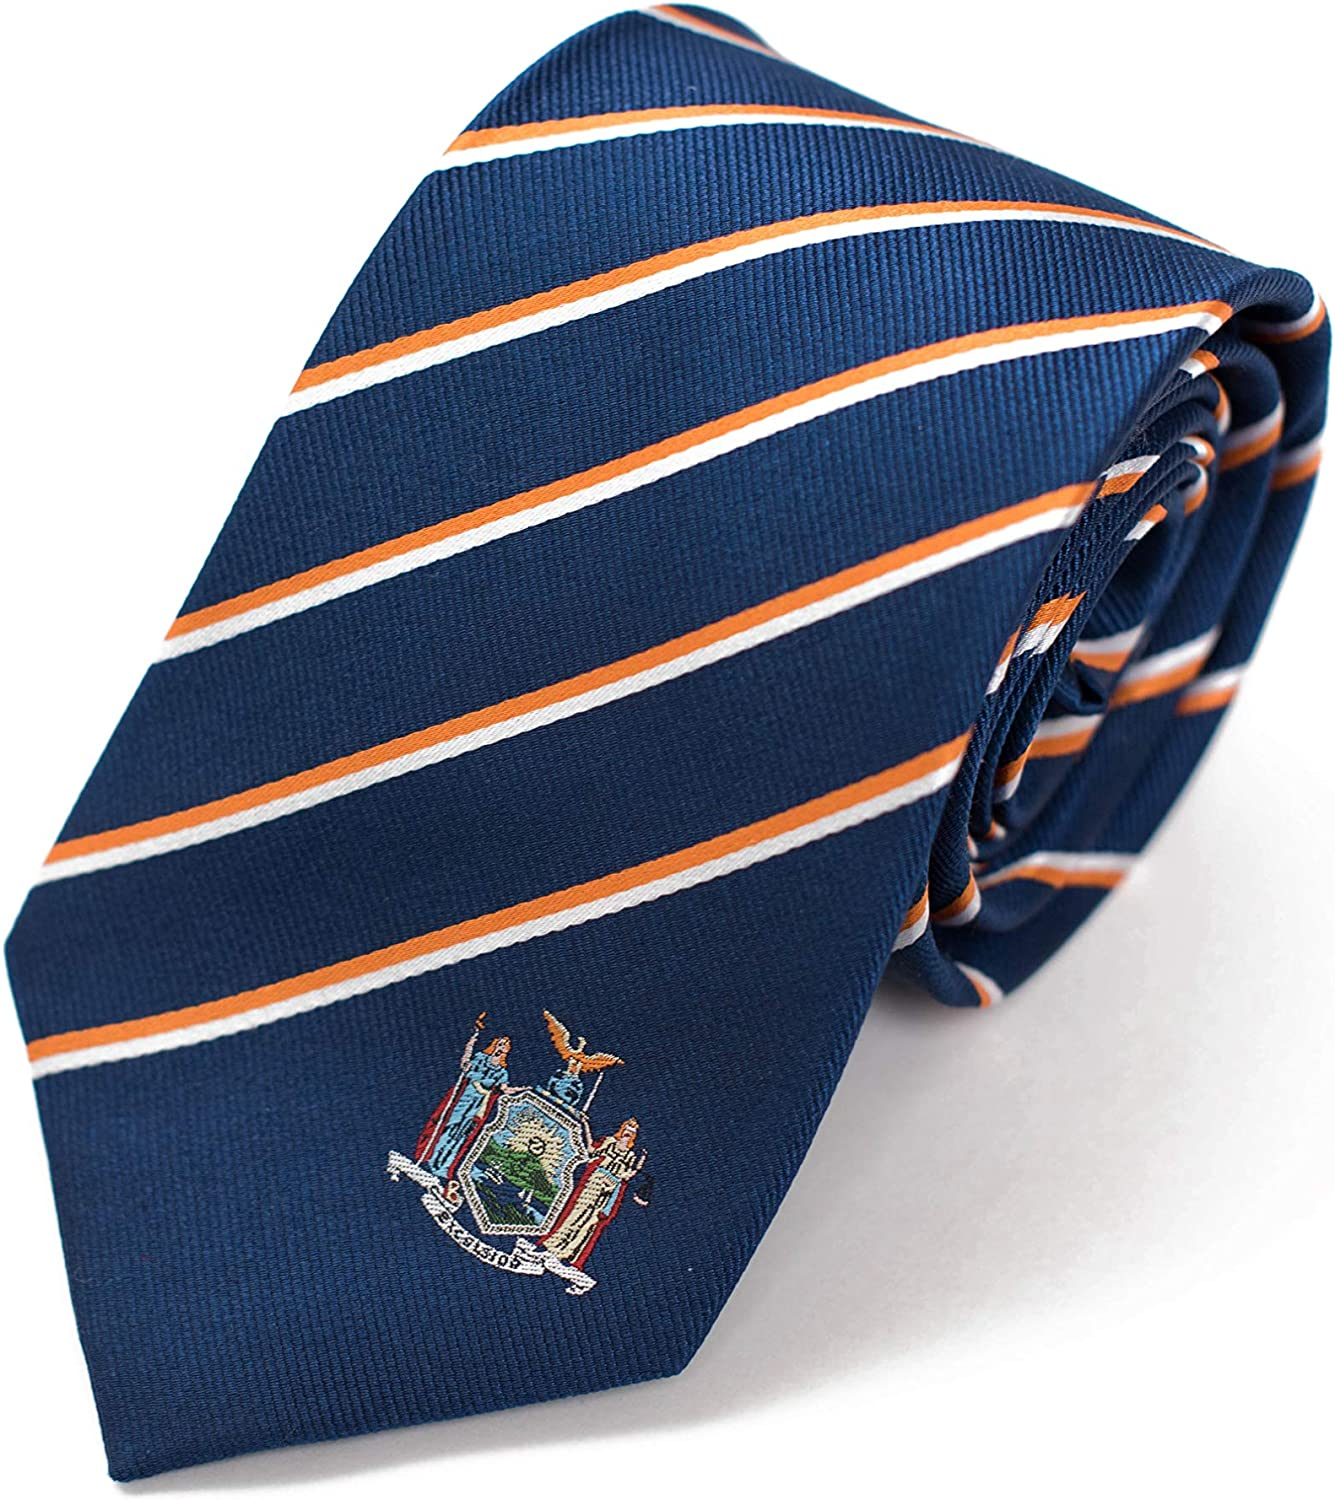 New York Translated Tie Silk Popular brand in the world 100% Woven